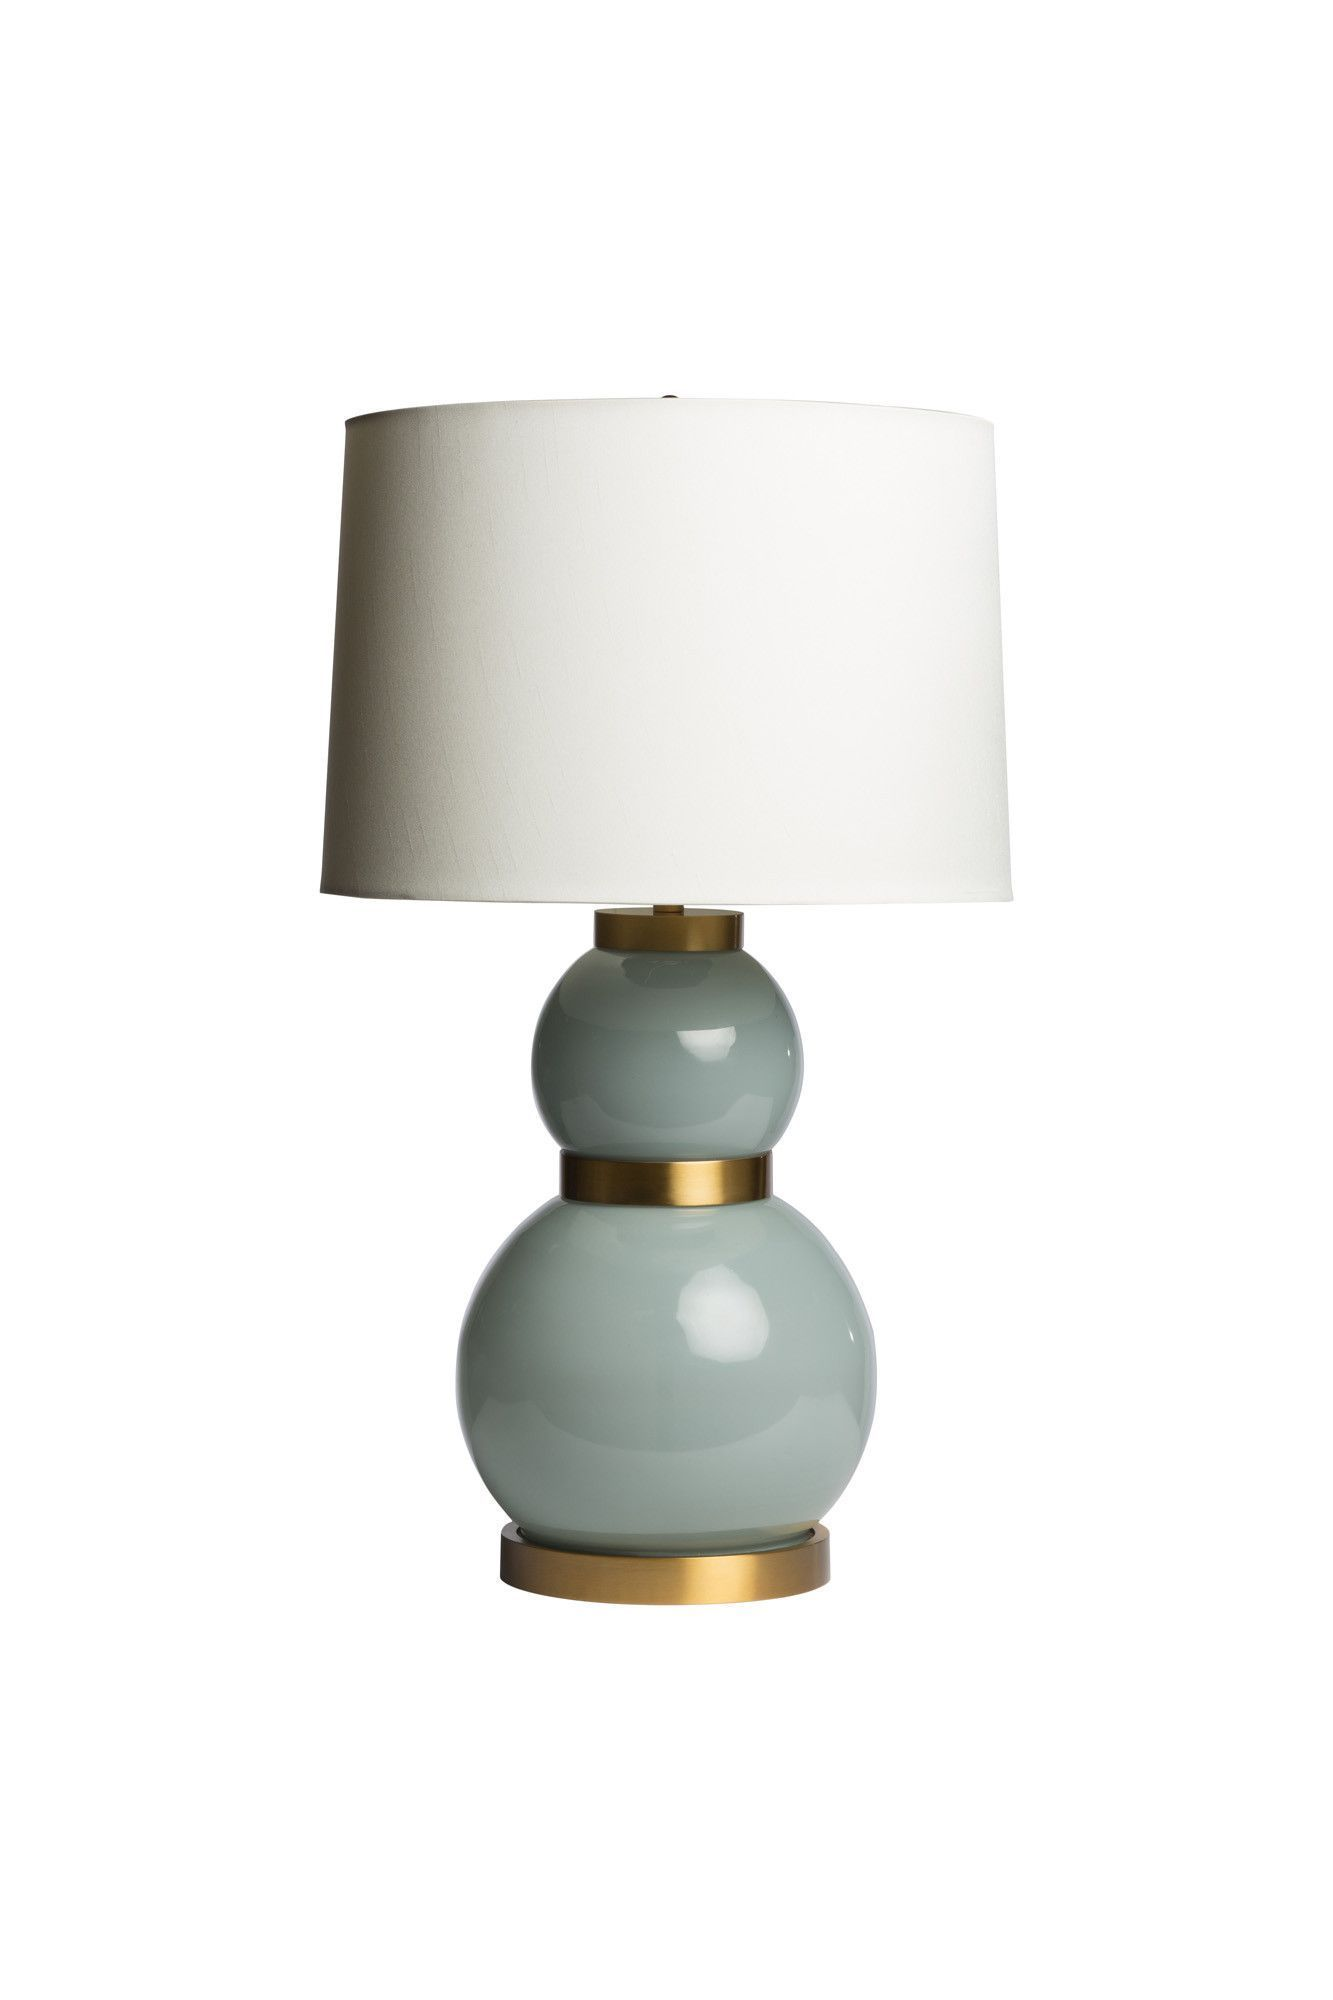 Lexi blue table lamp rusticcontemporarylivingroom